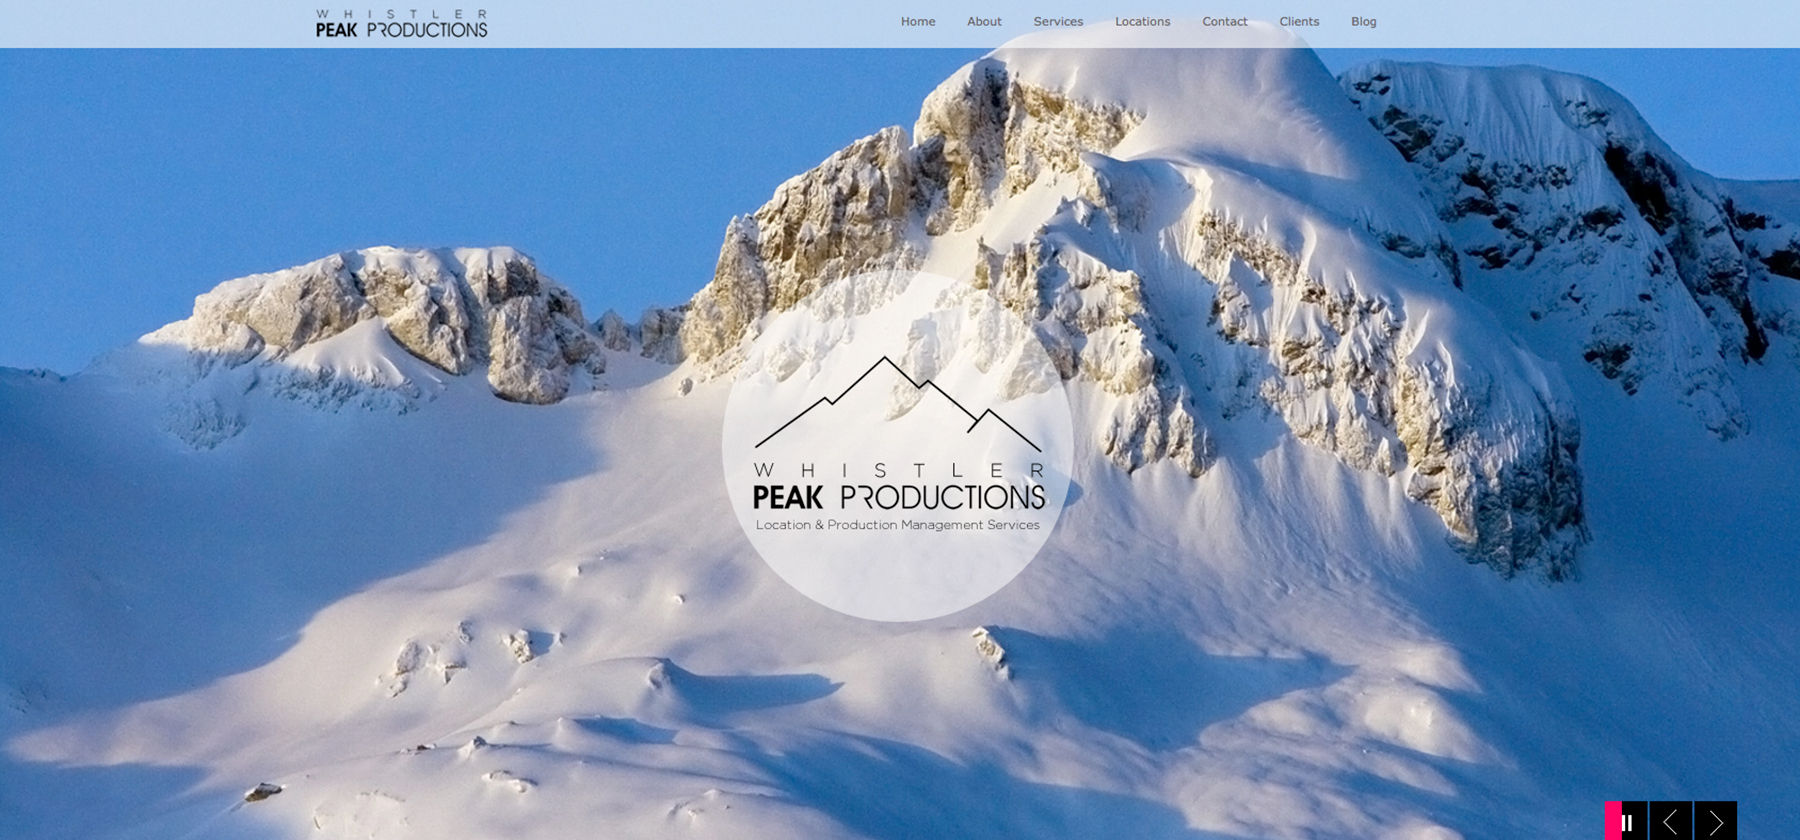 Sea Salt Web Design Whistler Peak Productions